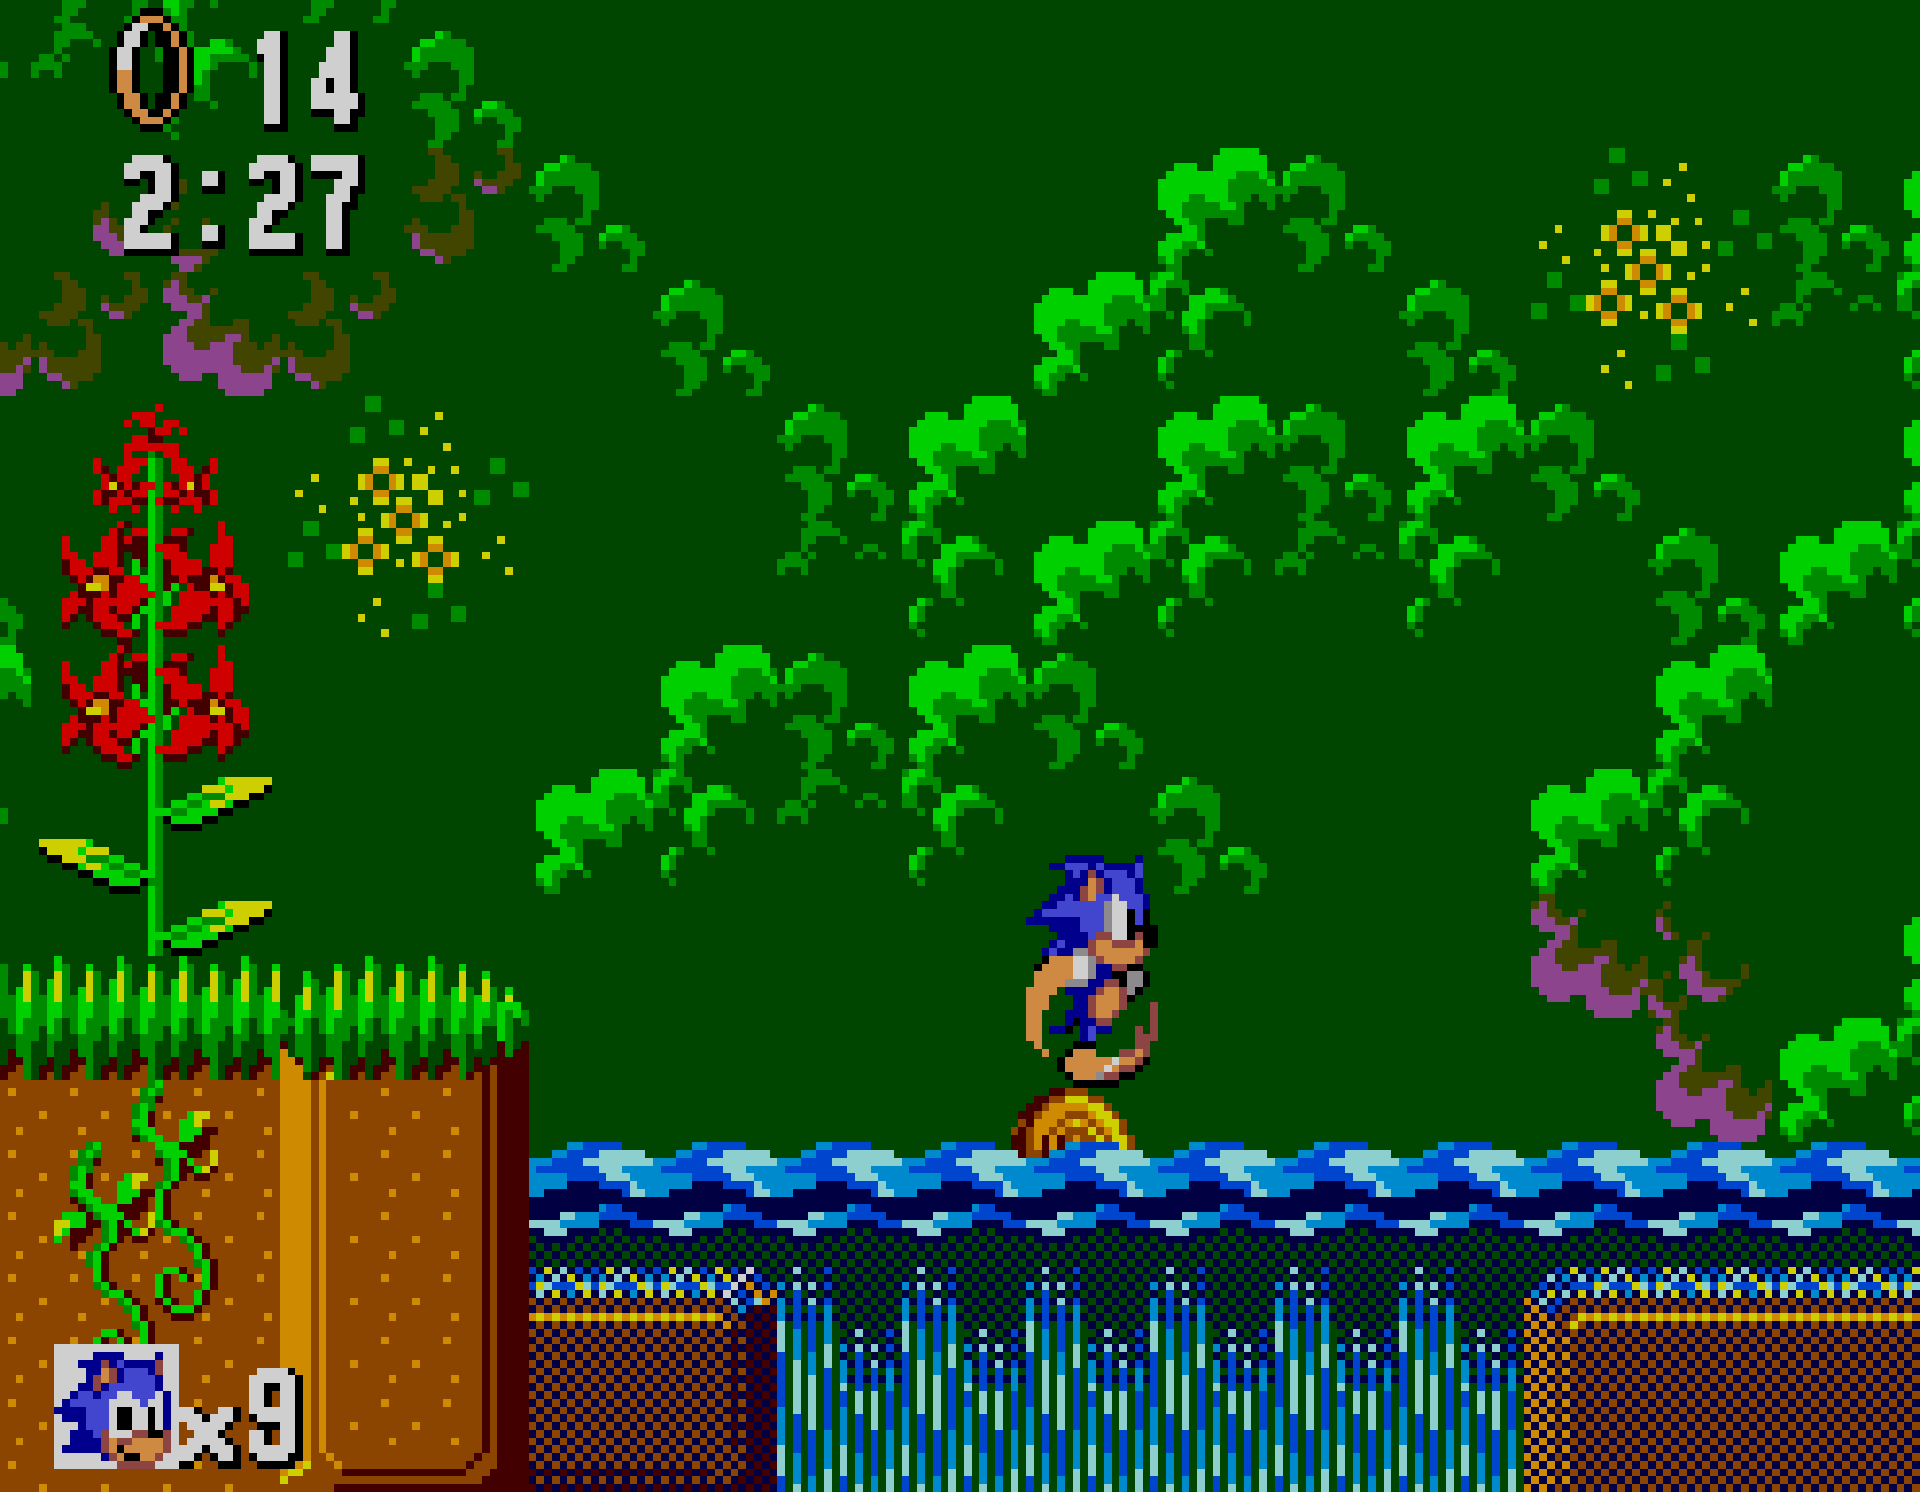 Sonic-The-Hedgehog-Master-System-4-Rolli